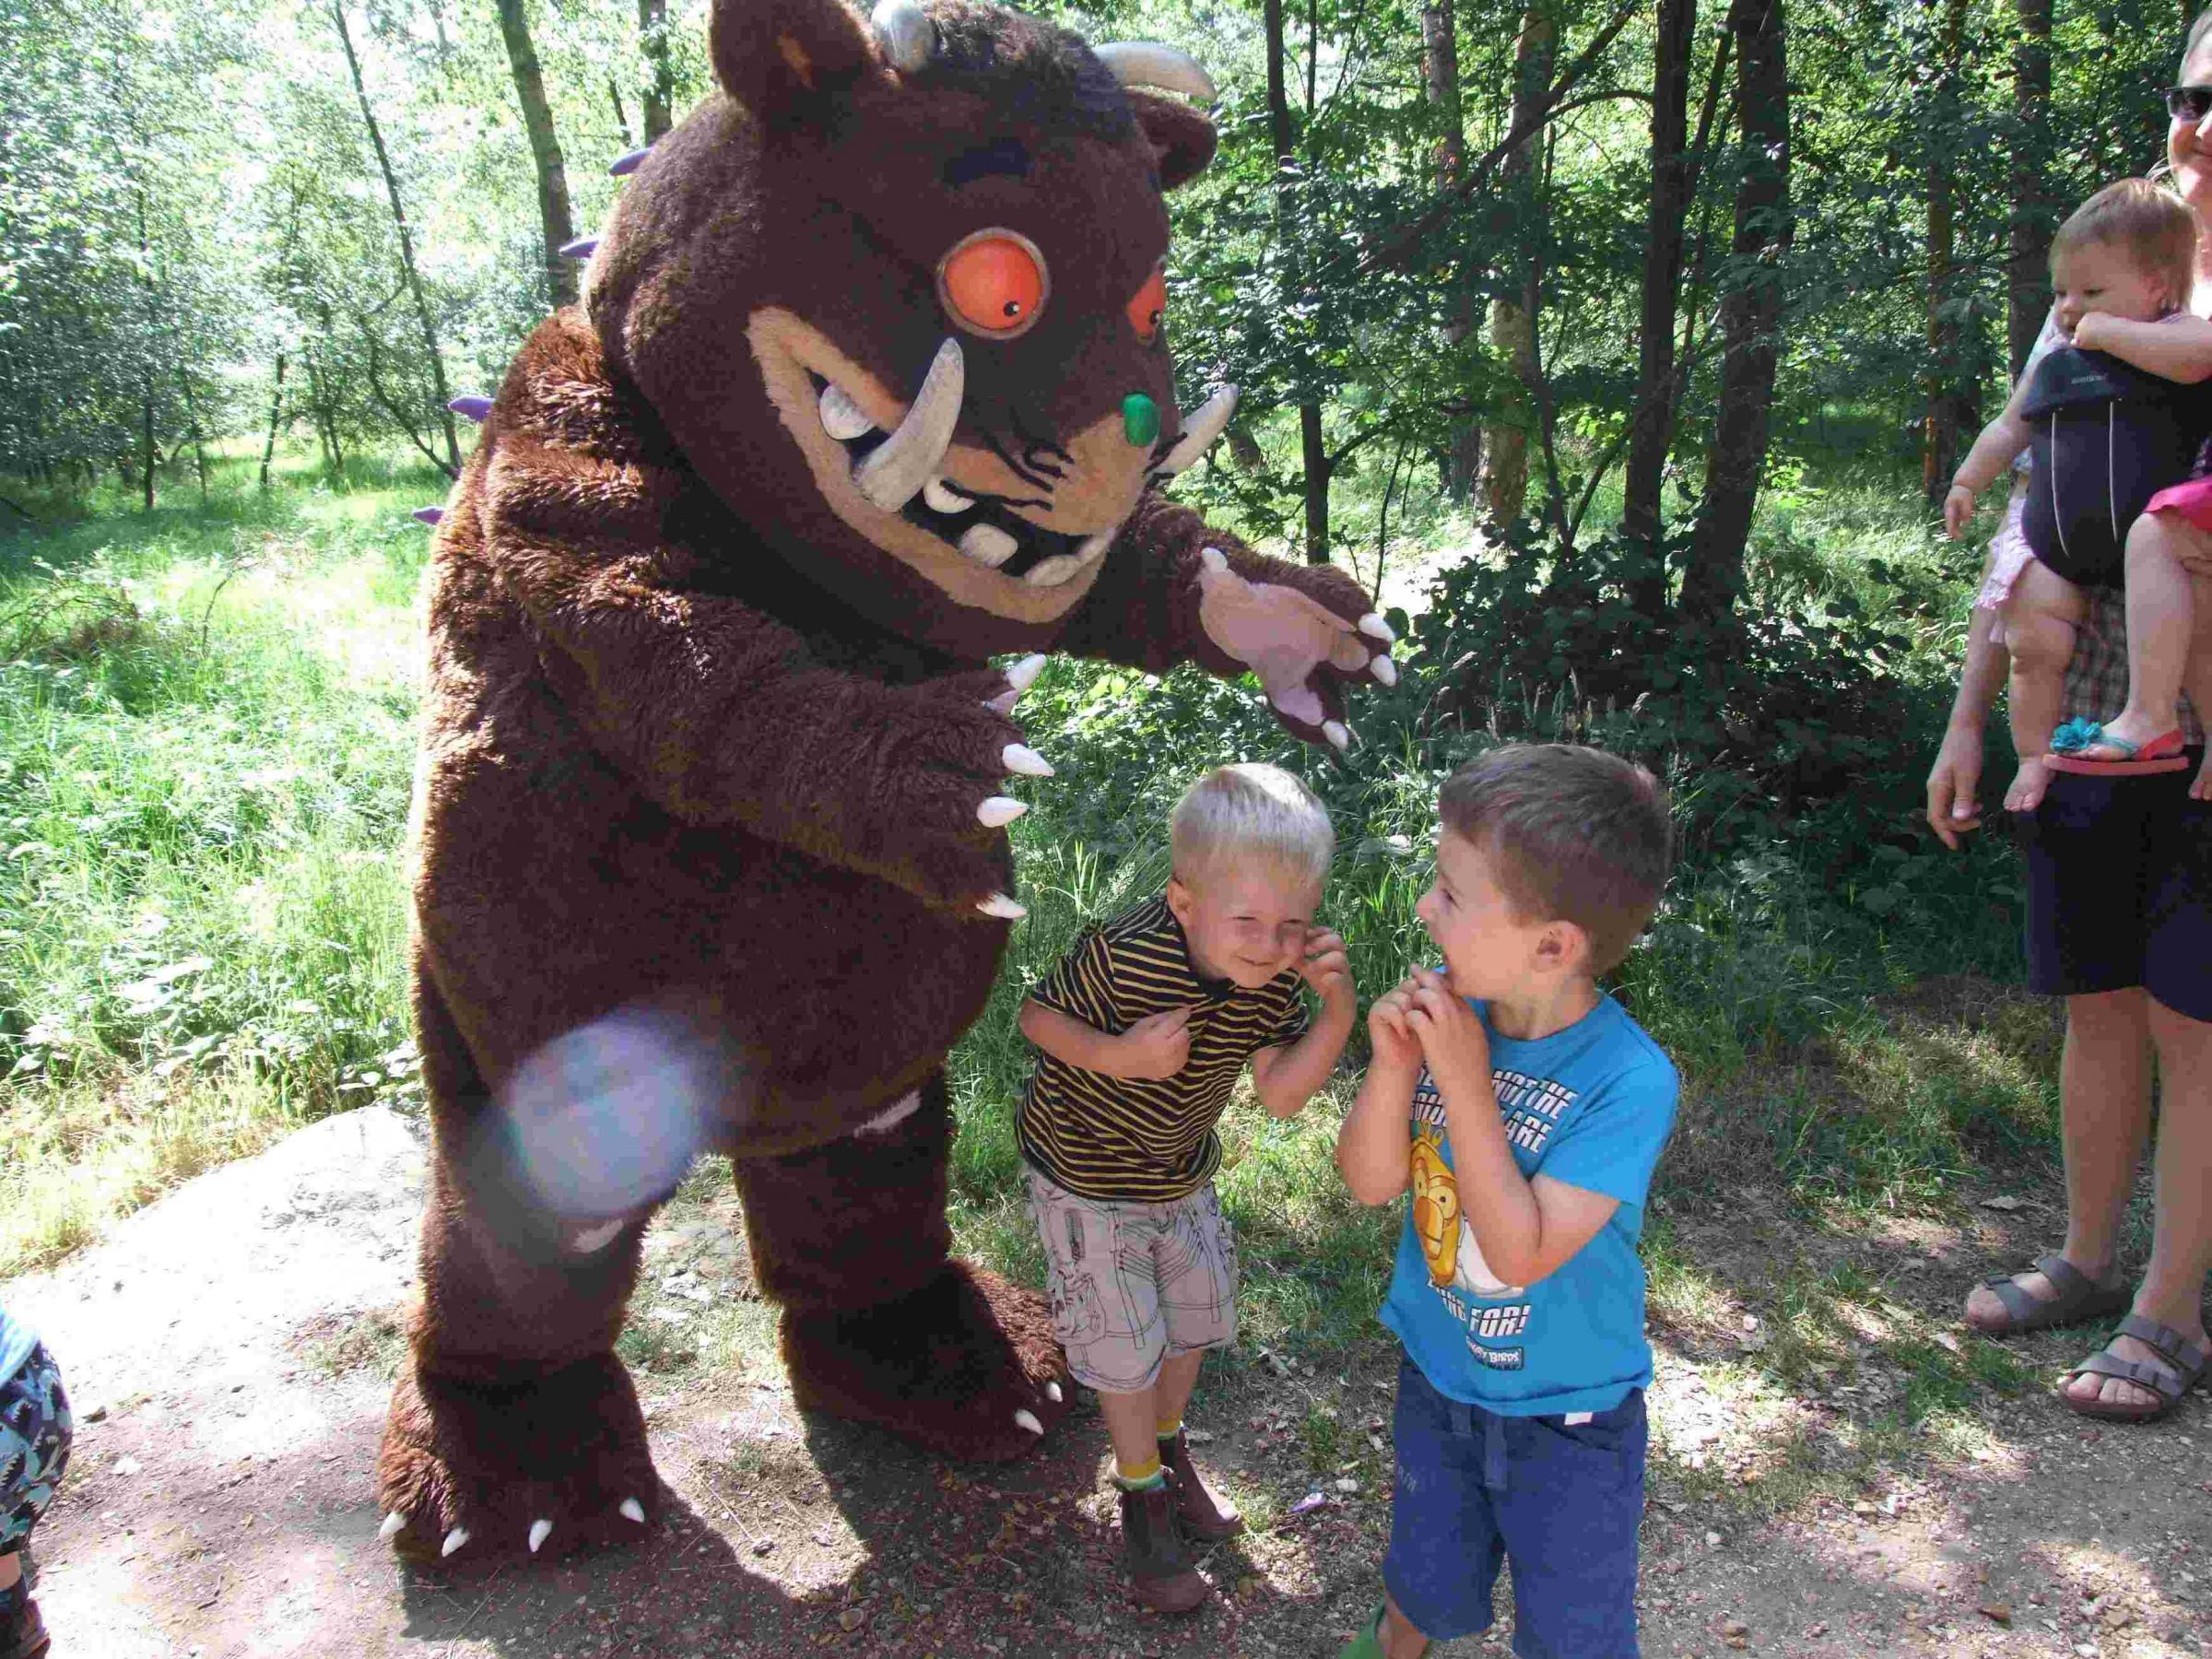 Gruffalo to vis